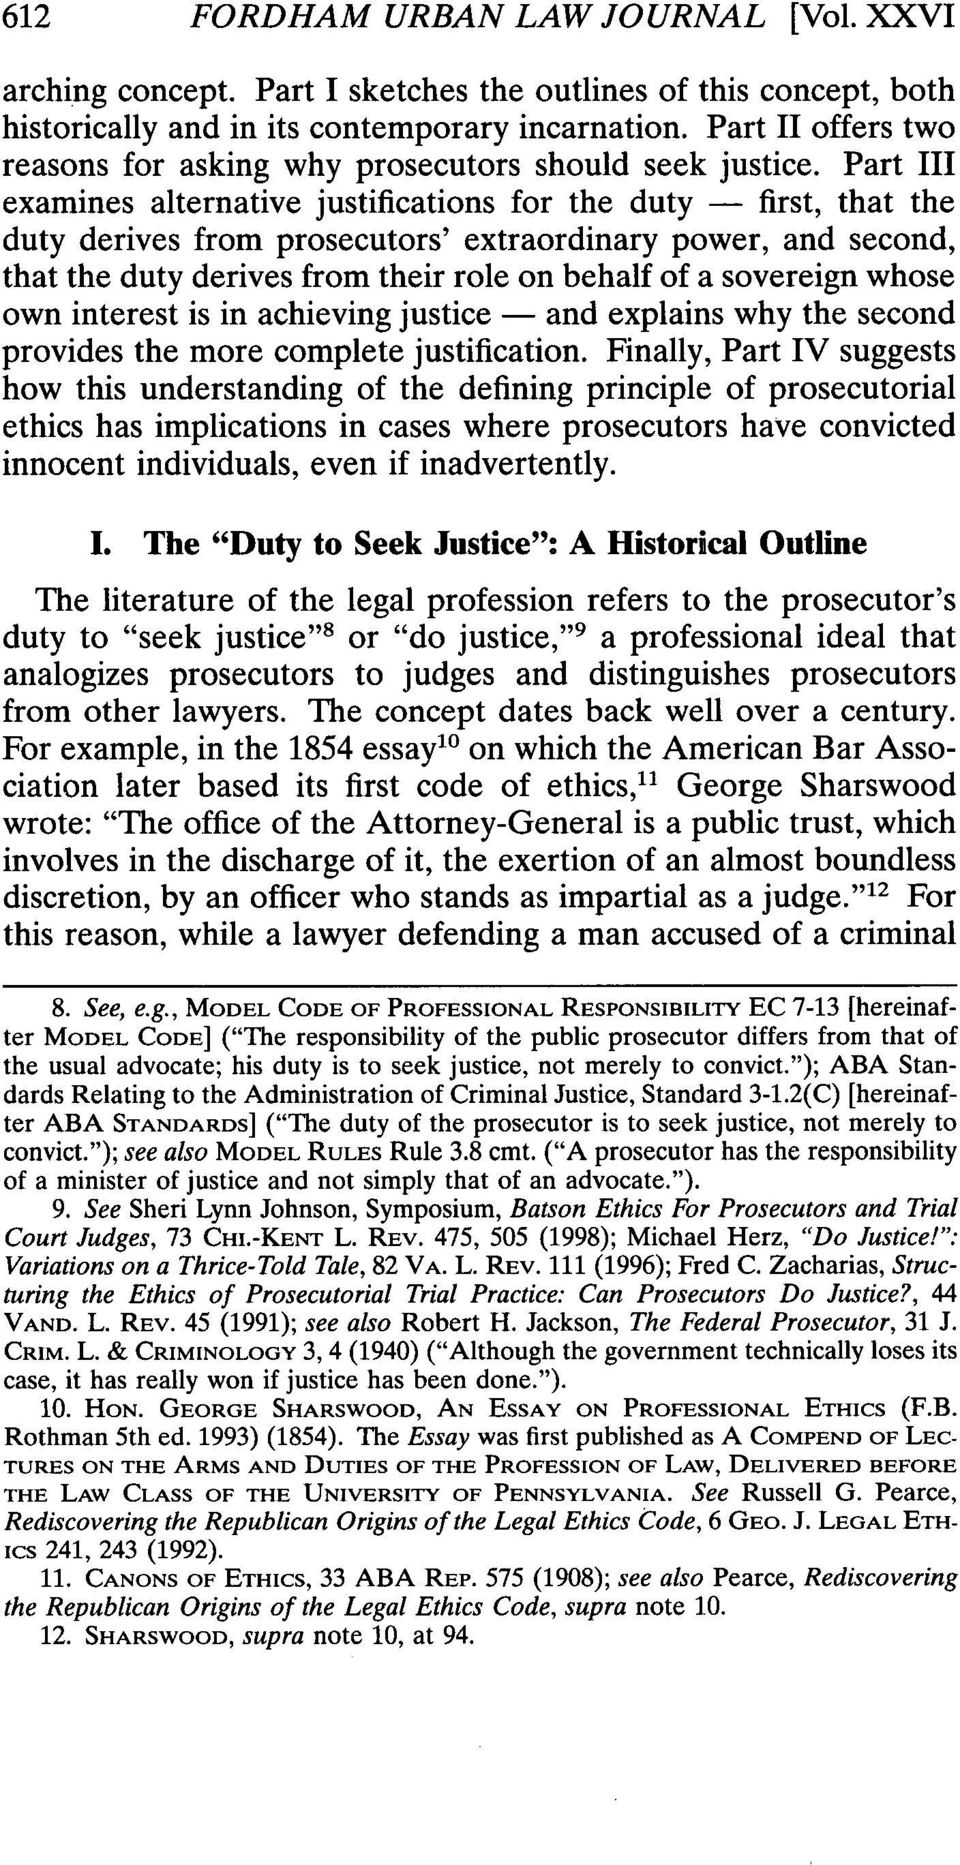 Part III examines alternative justifications for the duty - first, that the duty derives from prosecutors' extraordinary power, and second, that the duty derives from their role on behalf of a